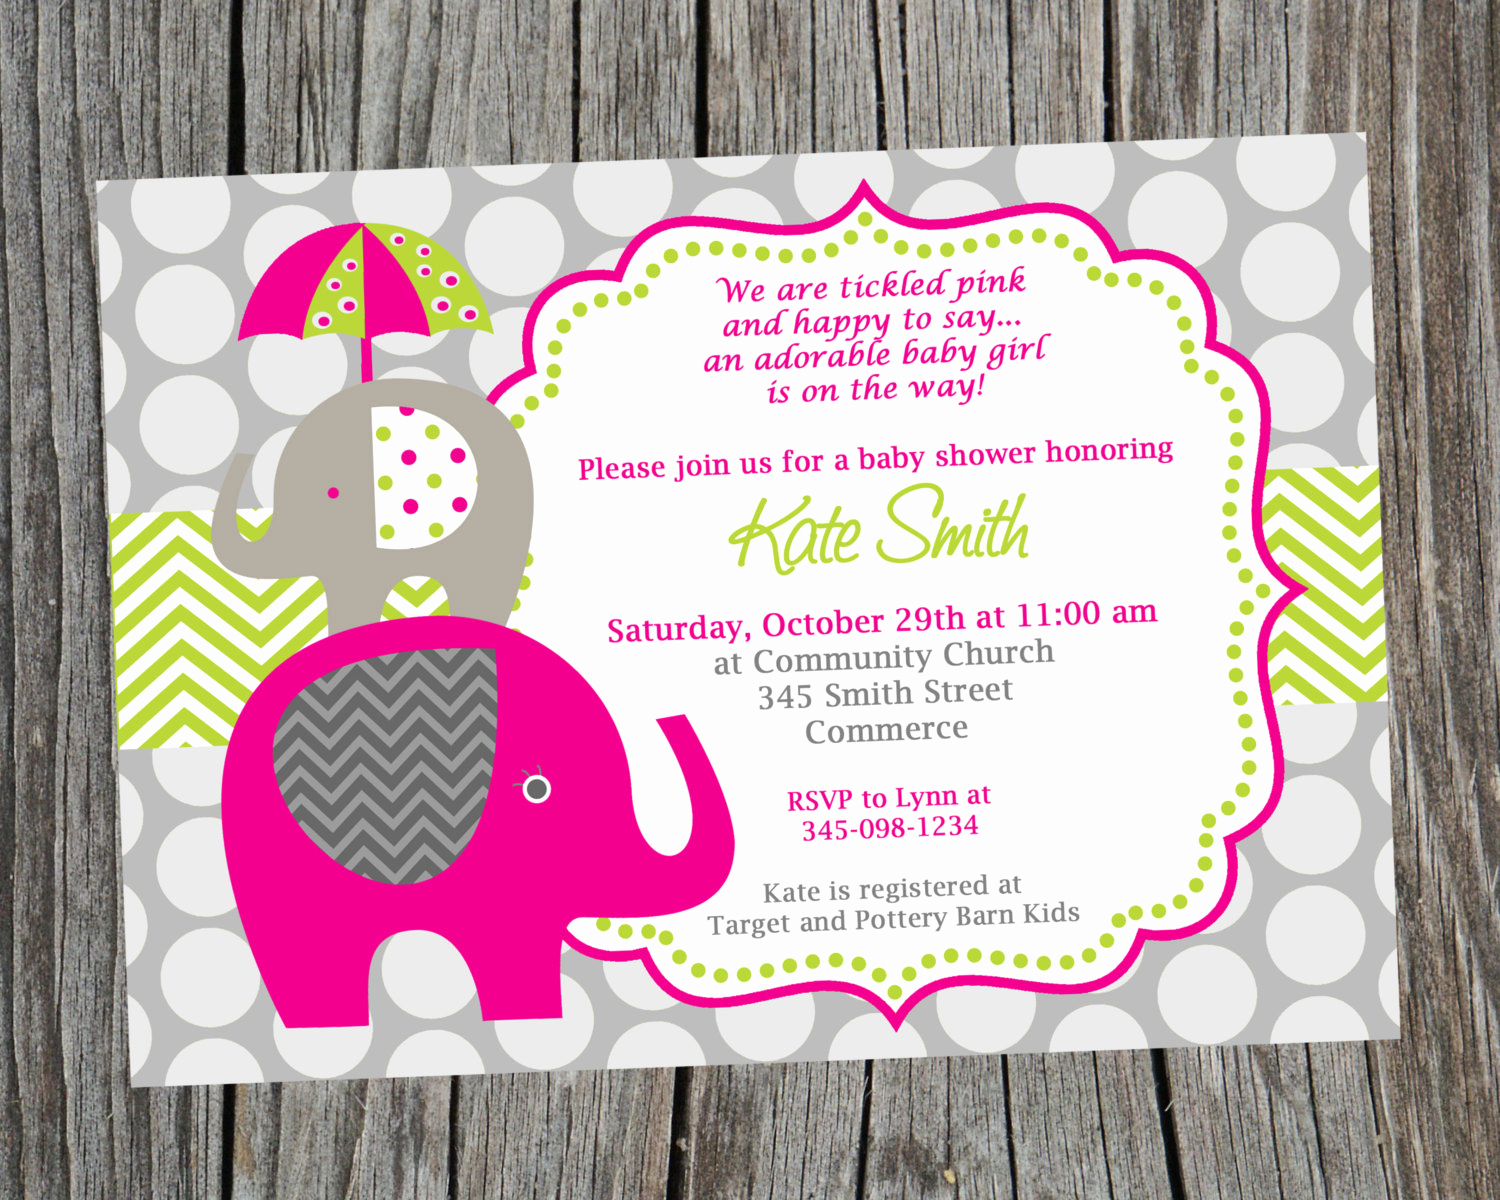 Elephant Baby Shower Invitation Elegant Hot Pink and Green Elephant Baby Shower Invitation Printable